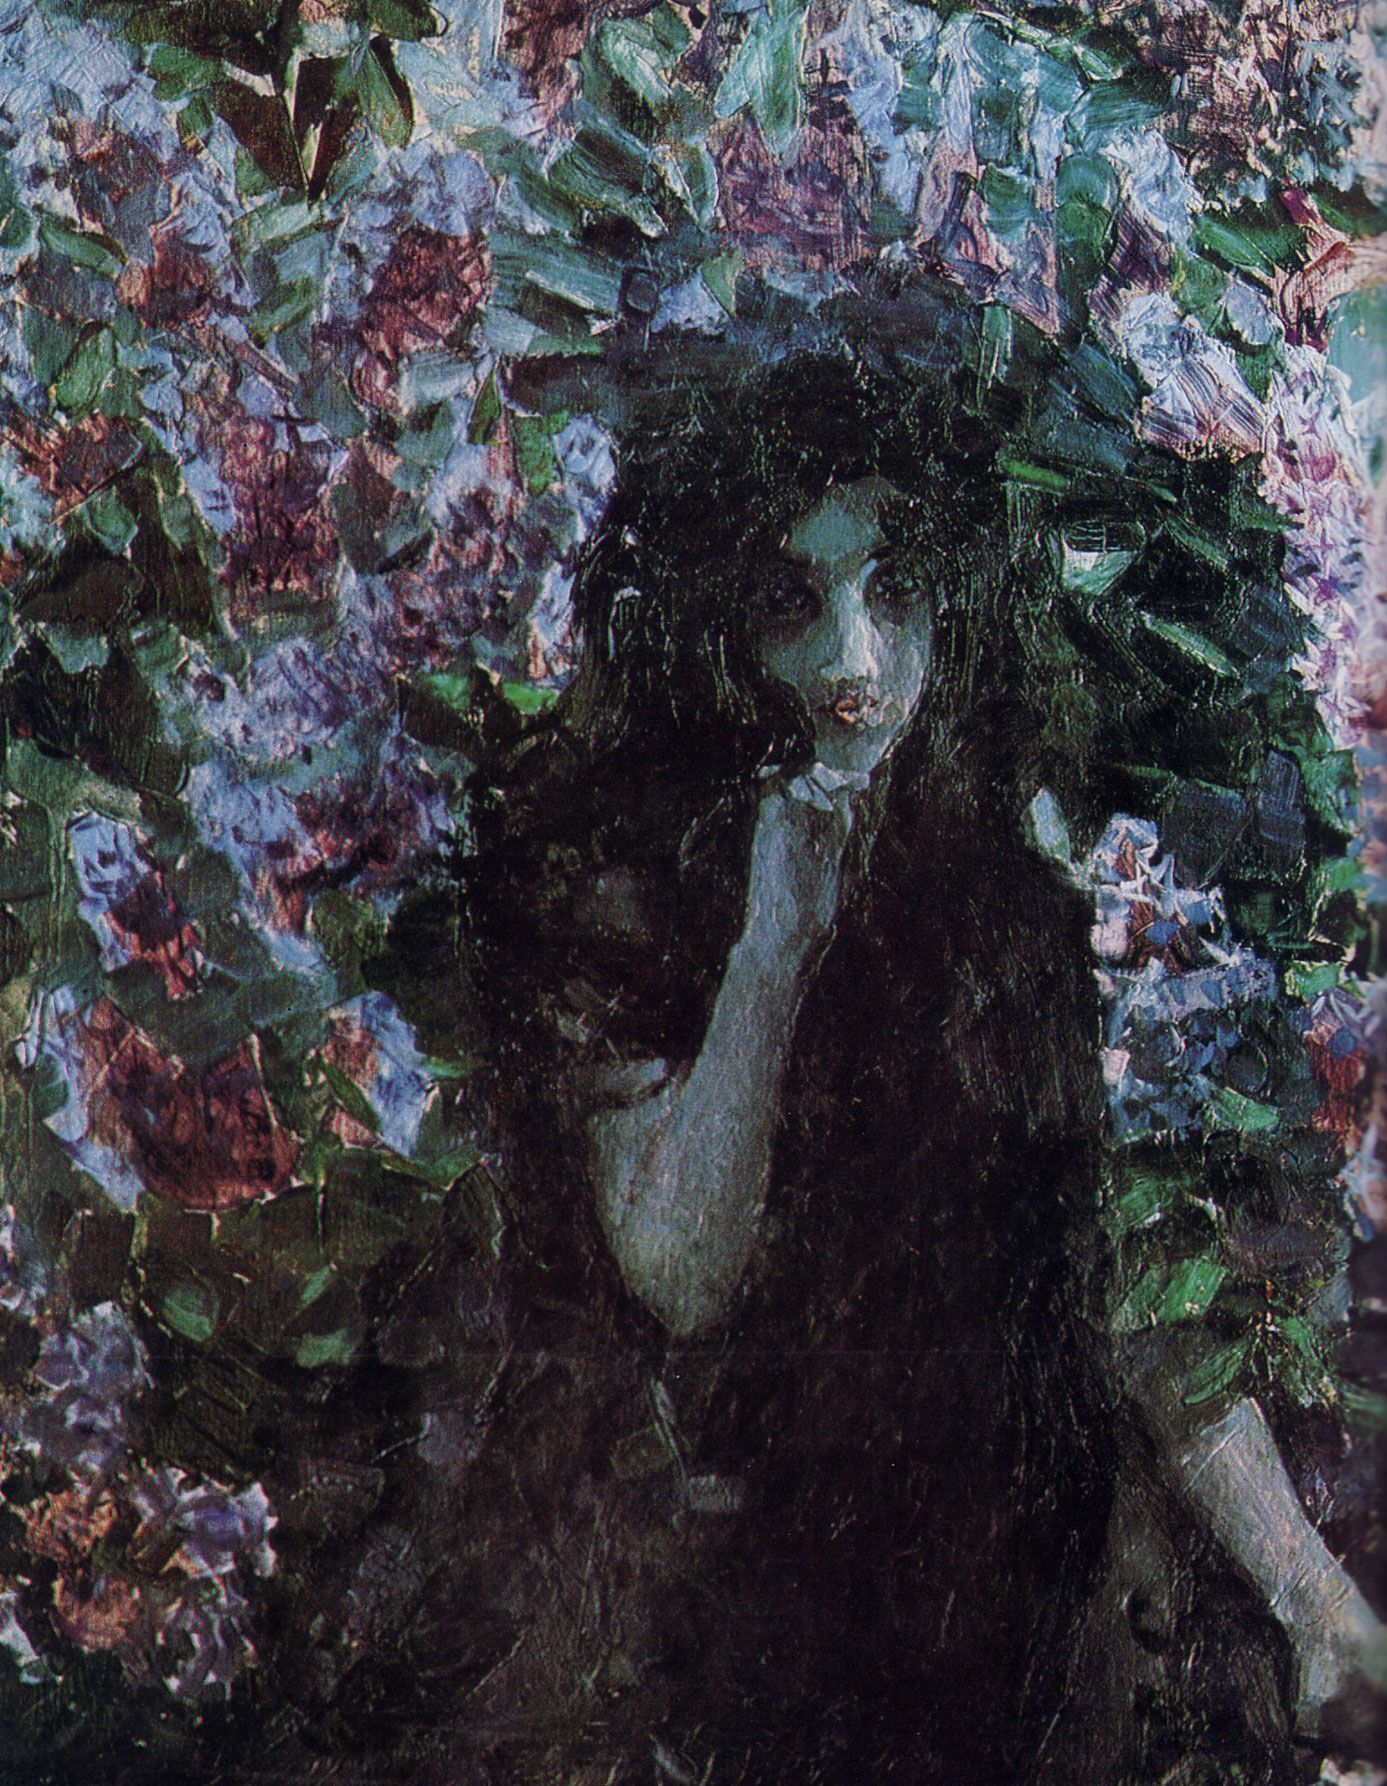 M. A. Vrubel, Lilac: analysis and description of the painting